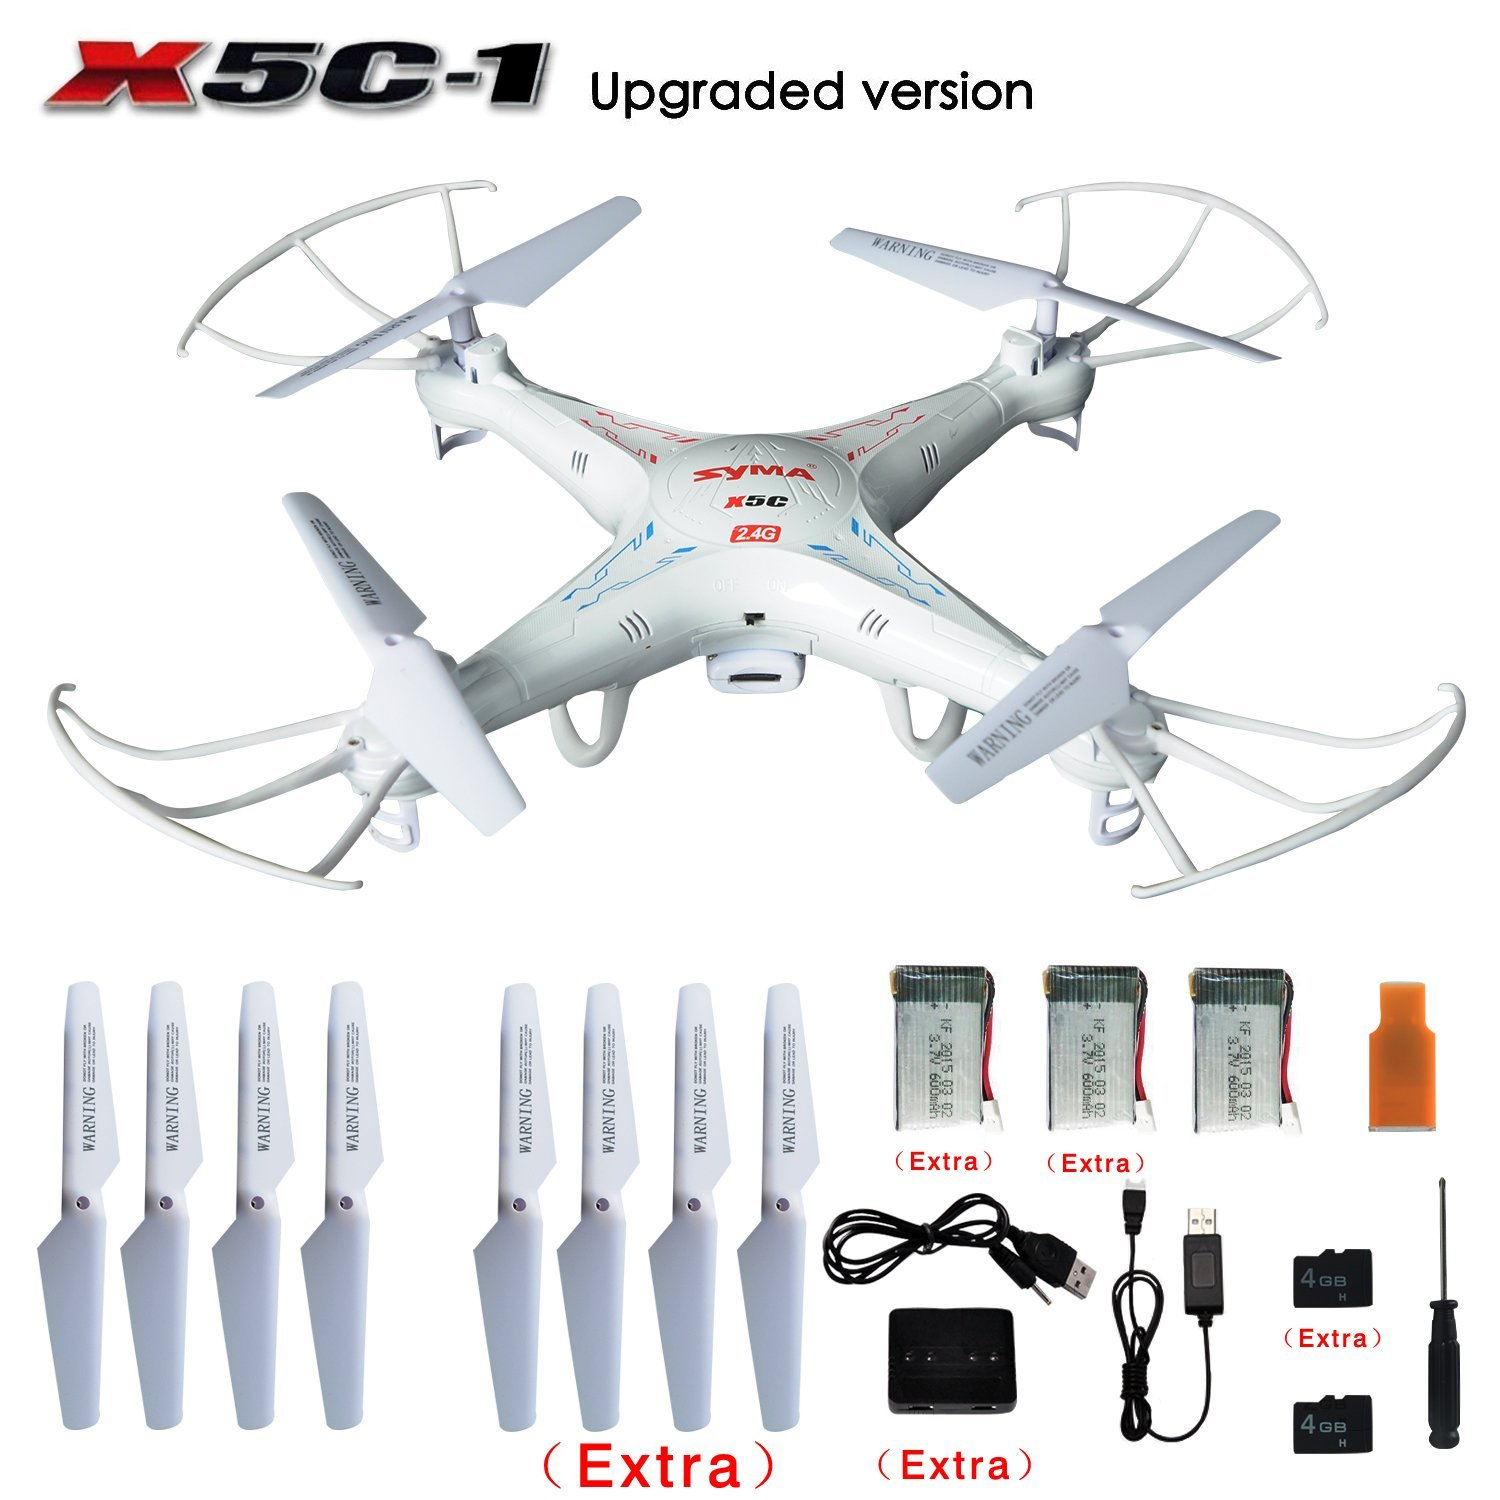 Original SYMA X5C/ X5C-1 Explorers 2.4G 4CH 6-Axis Gyro RC Quadcopter with HD Camera+ Extra 2pcs Batteries+Propeller Blades+4GB syma x5c 1 2mp hd fpv camera 2 4ghz 4ch 6 axis rc quadcopter